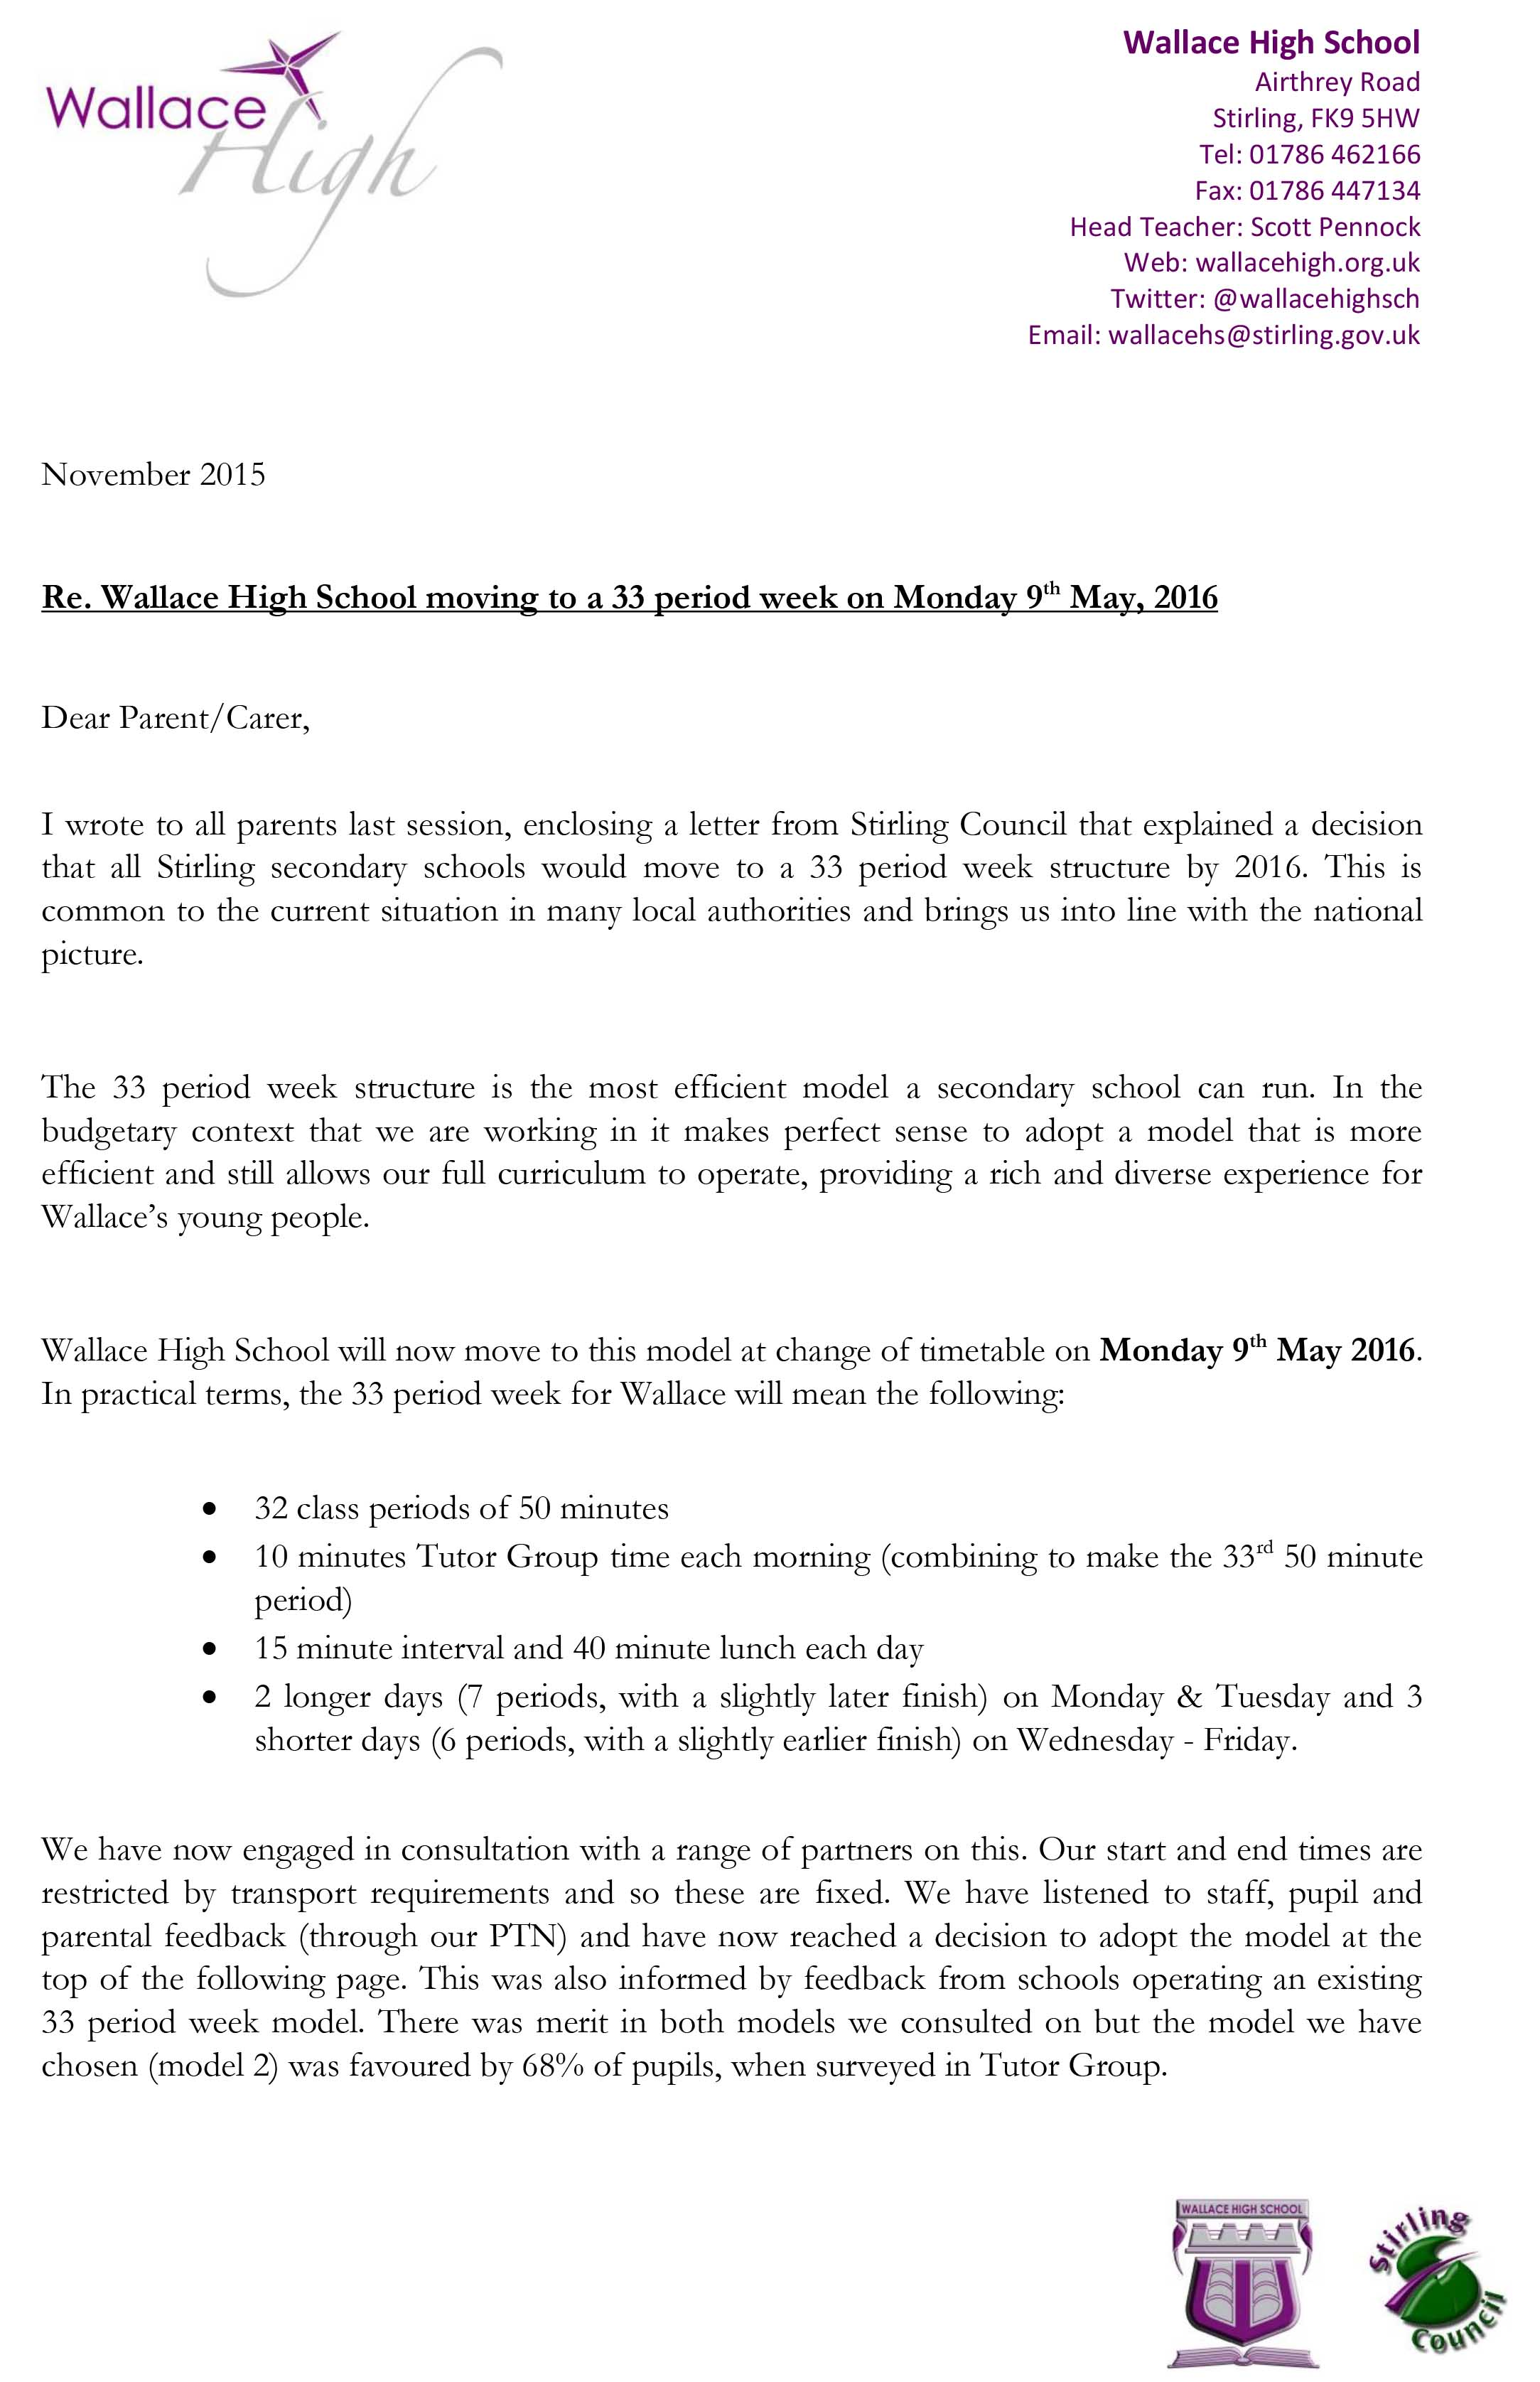 Head Teacher's Letter - 33 Period Week - News - Wallace High School